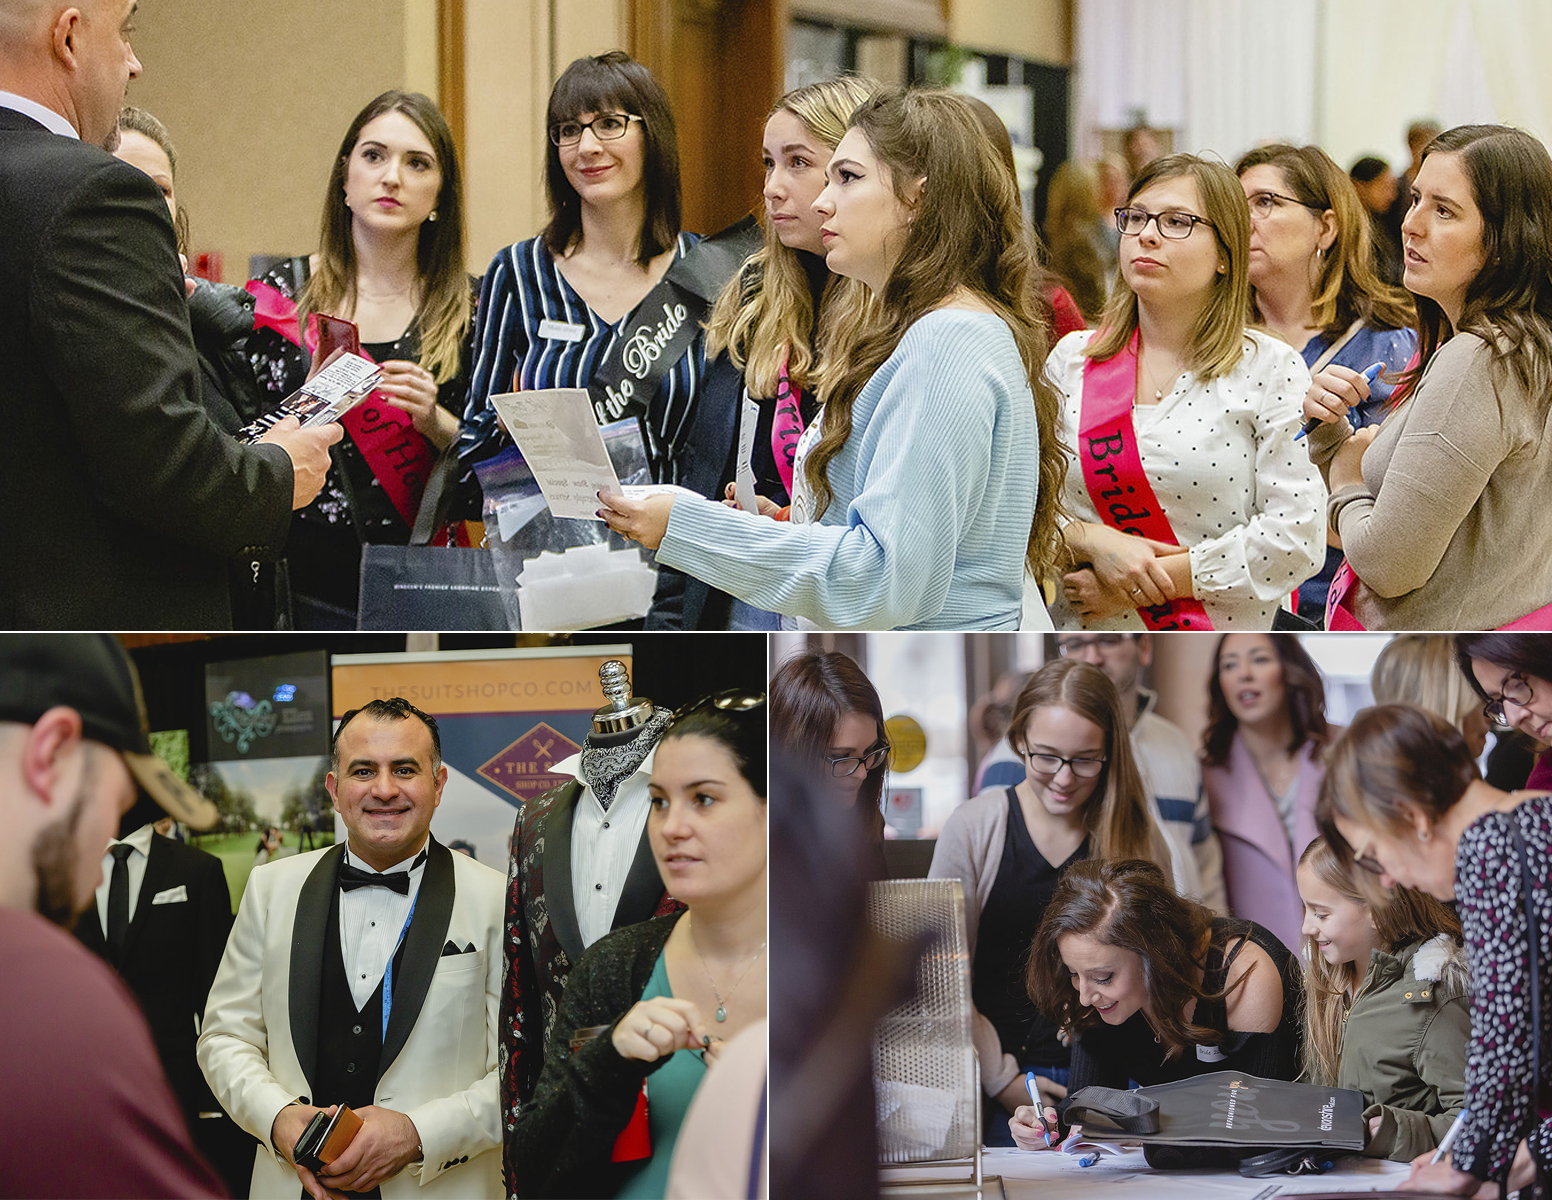 Wedding Extravaganza Show pictures